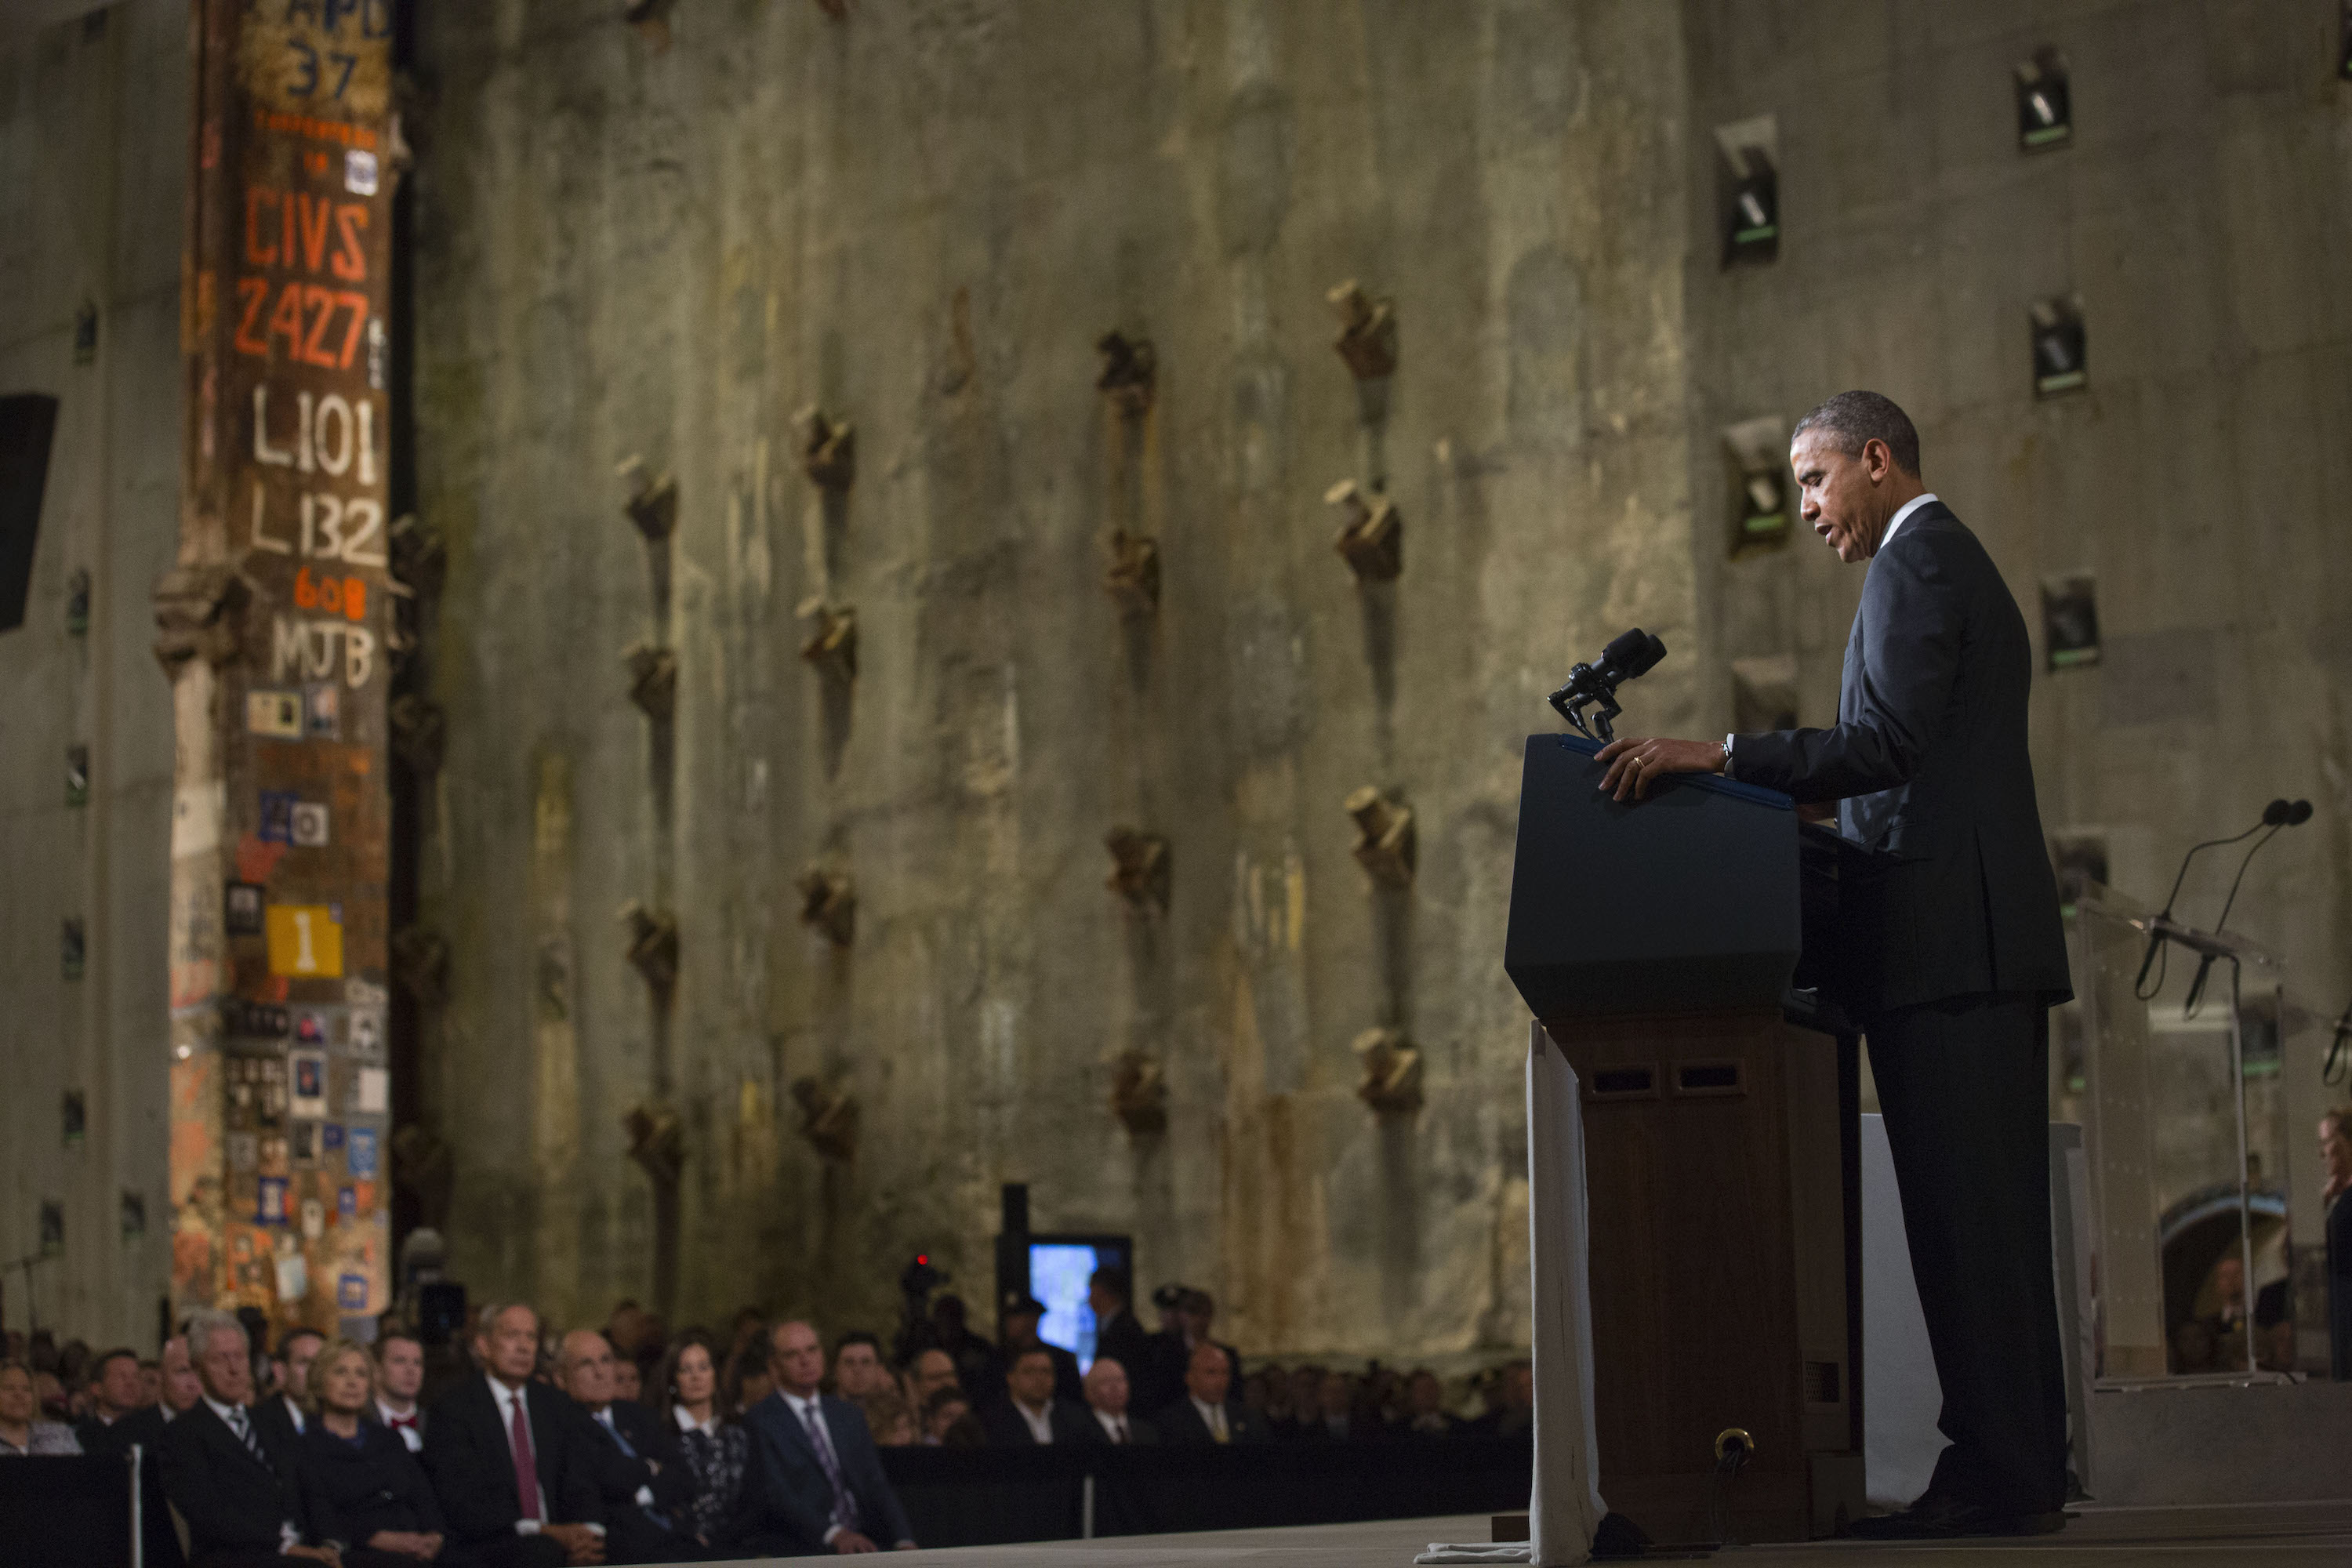 President Barack Obama speaks in Foundation Hall at the dedication of the 9/11 Memorial Museum on May 15, 2014. Former President Bill Clinton, Secretary of State Hillary Clinton, former New York Governor George Pataki, former Mayor Rudy Giuliani, and others watch on with the Last Column and slurry wall behind them.